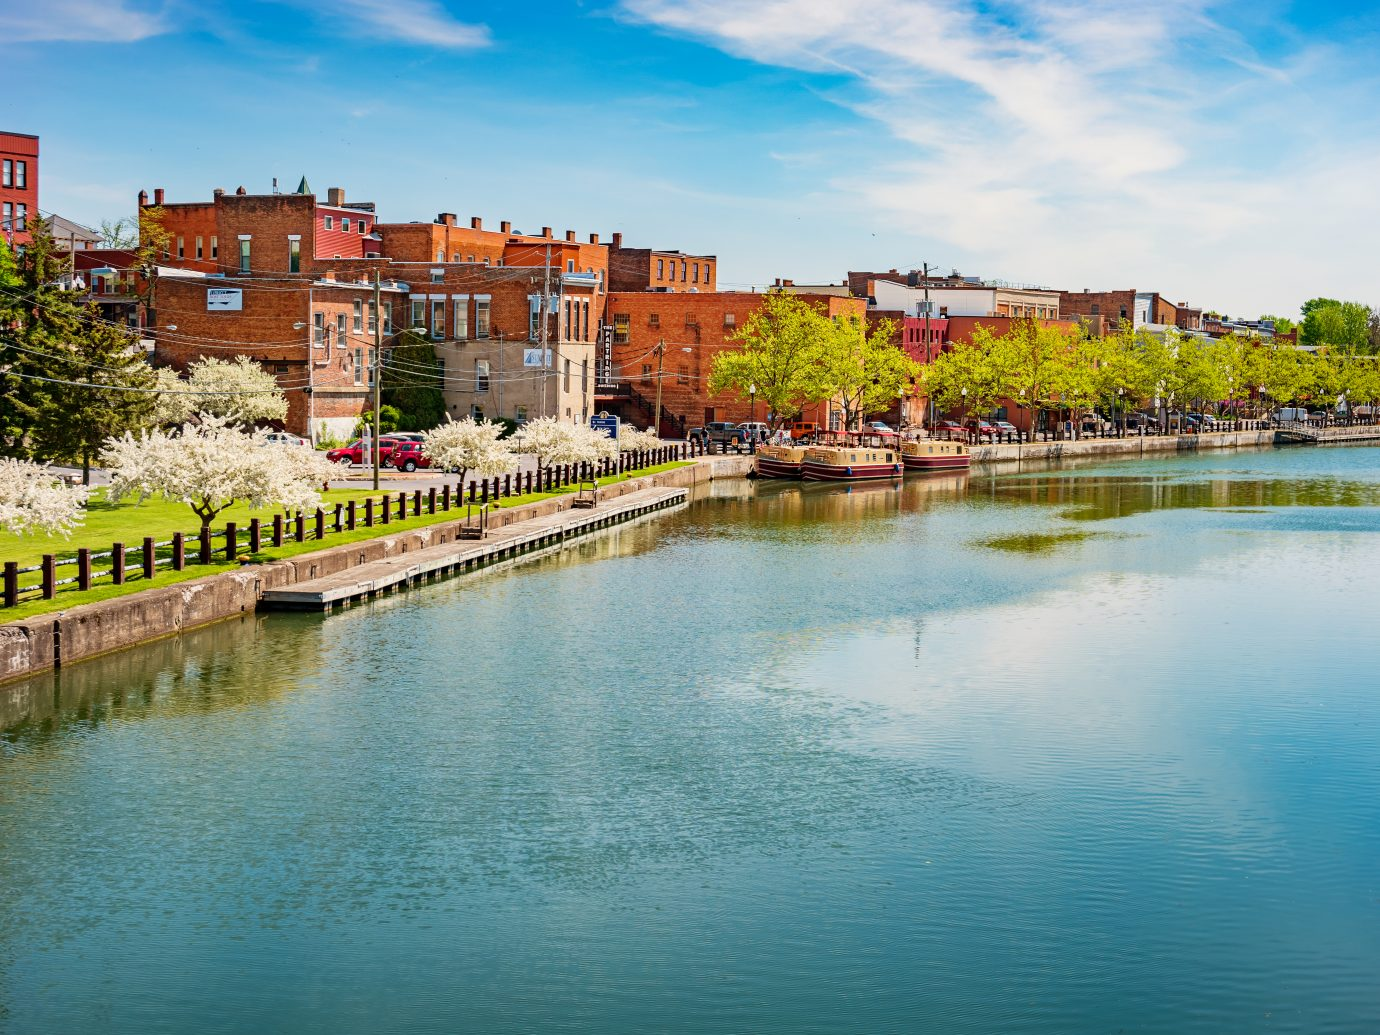 Stock photograph of park and promenade in downtown Seneca Falls and the Cayuga–Seneca Canal in the Finger Lakes region, upstate New York State, USA on a sunny day.